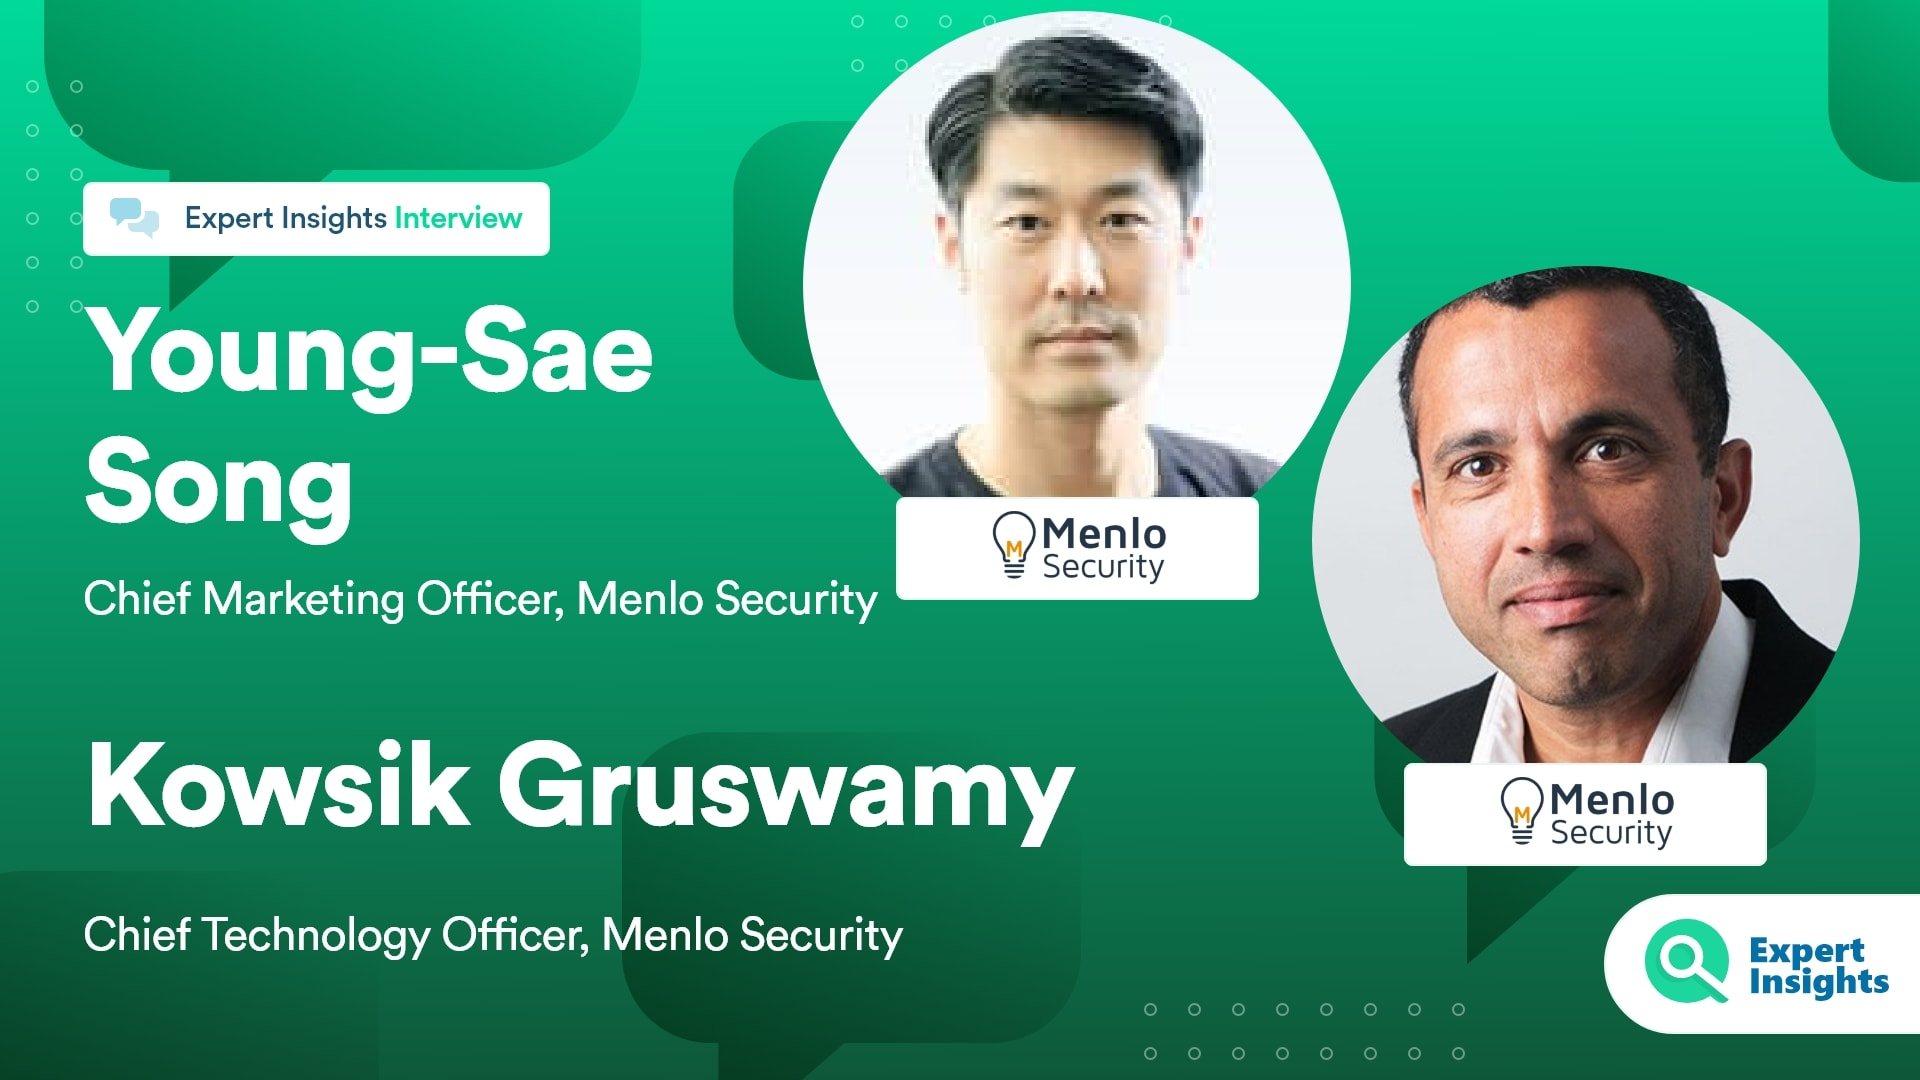 Expert Insights Interview With Song and Gruswamy Of Menlo